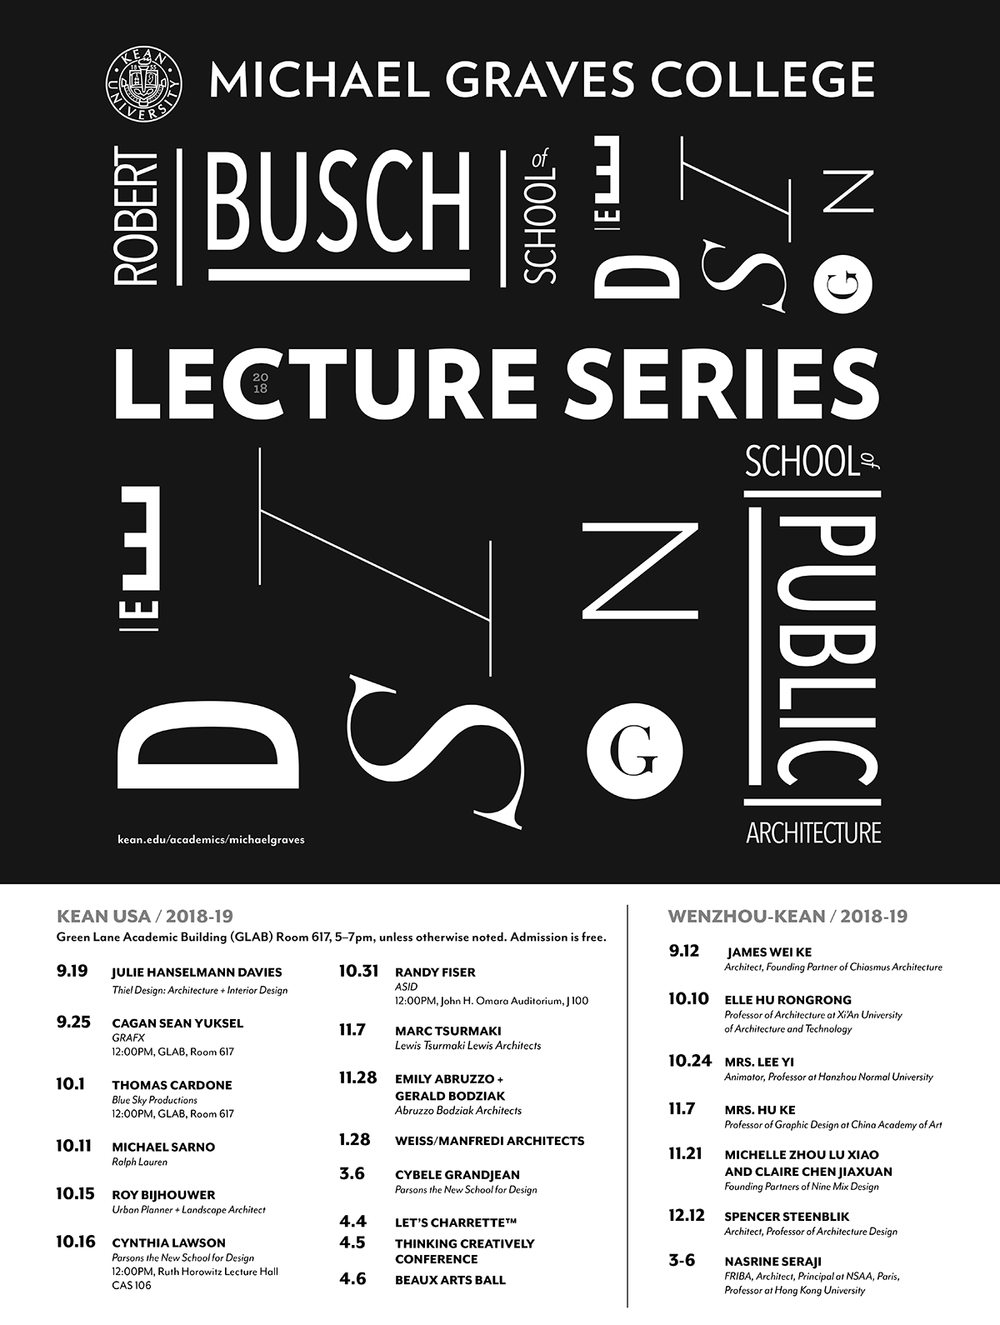 MGC_LectureSeries-Poster_18_19_FINAL.png